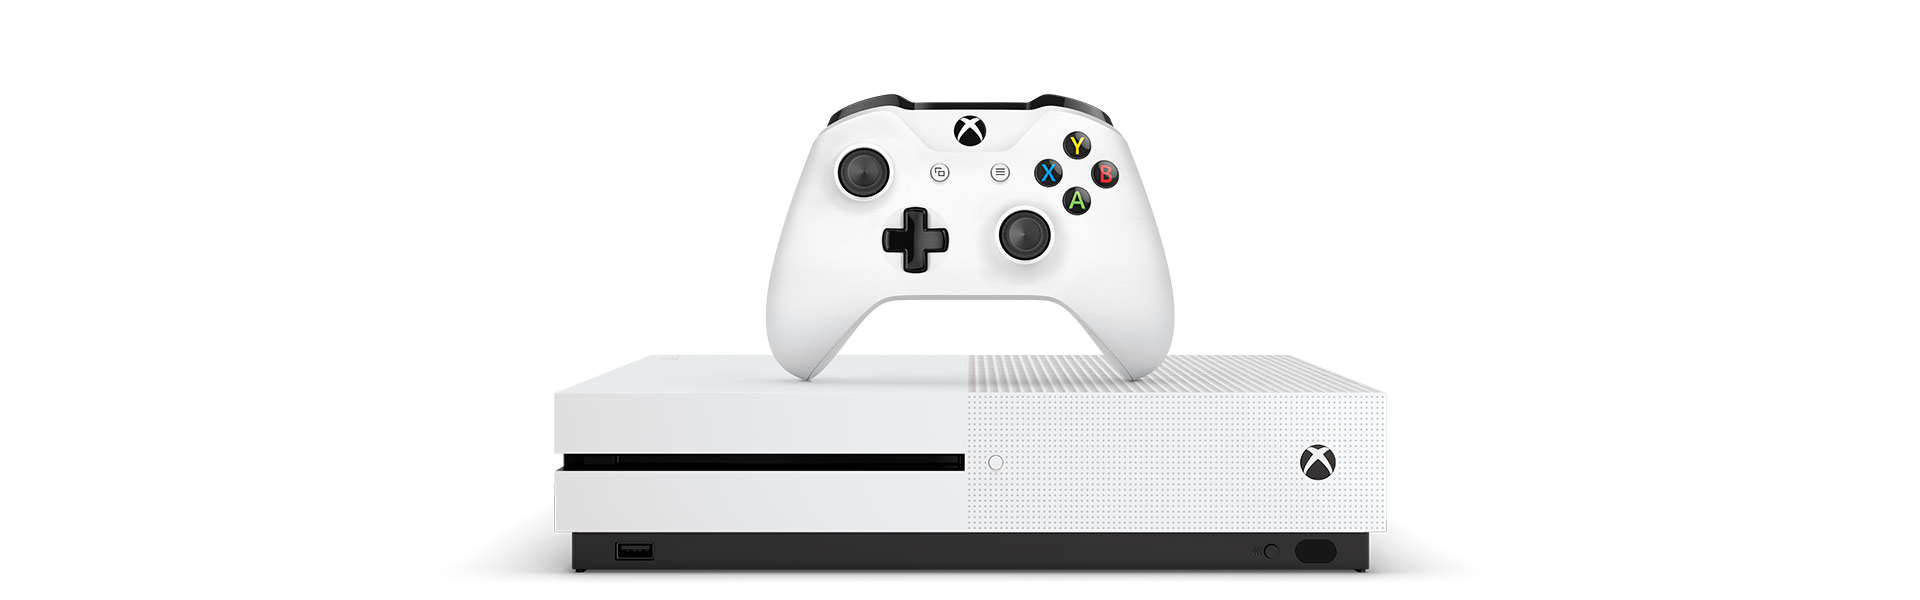 Front view of Xbox One S with a Xbox Wireless Controller on top